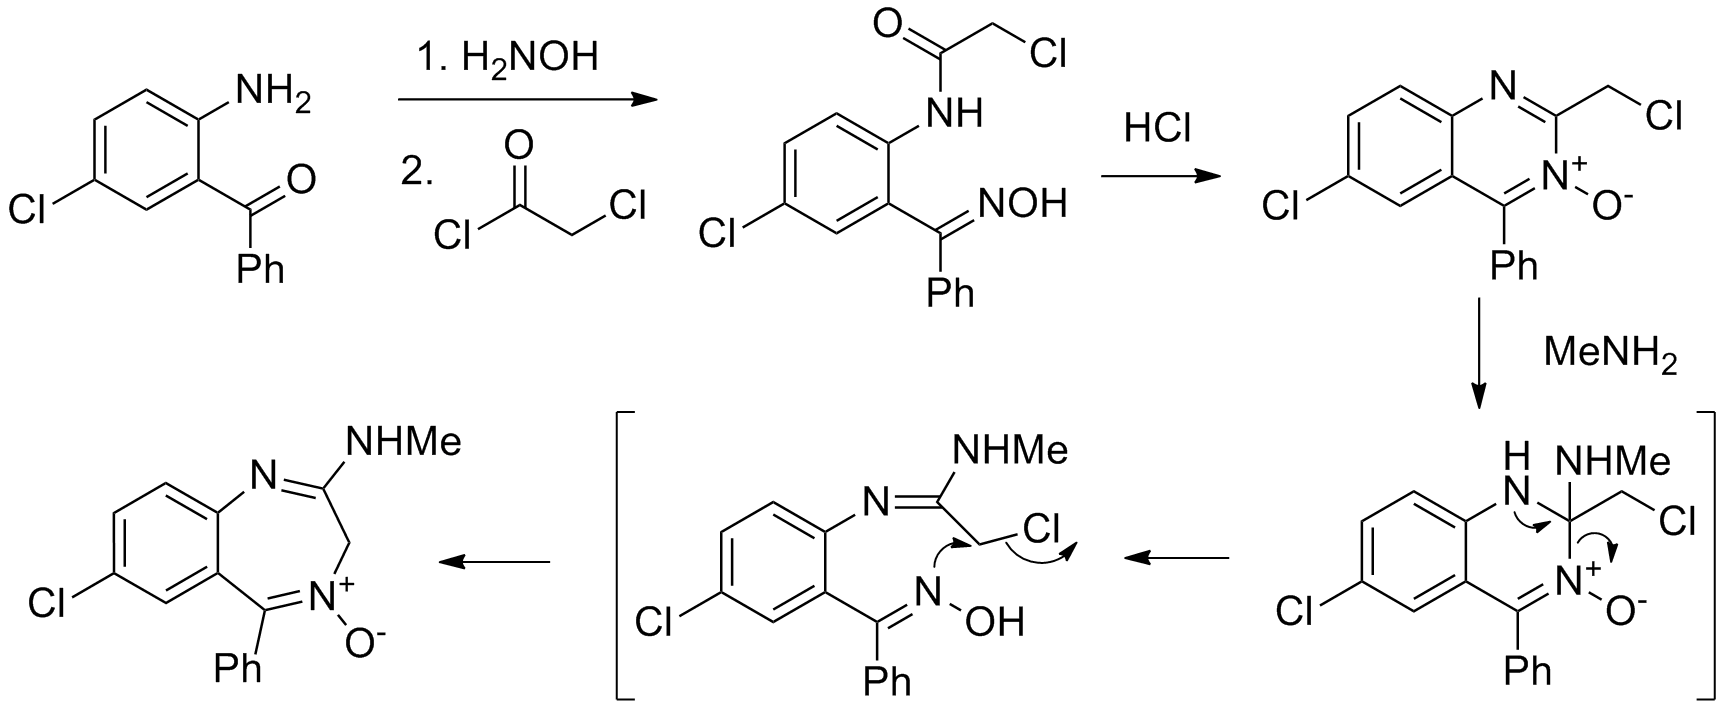 http://upload.wikimedia.org/wikipedia/commons/c/c1/Chlordiazepoxide_synthesis.png